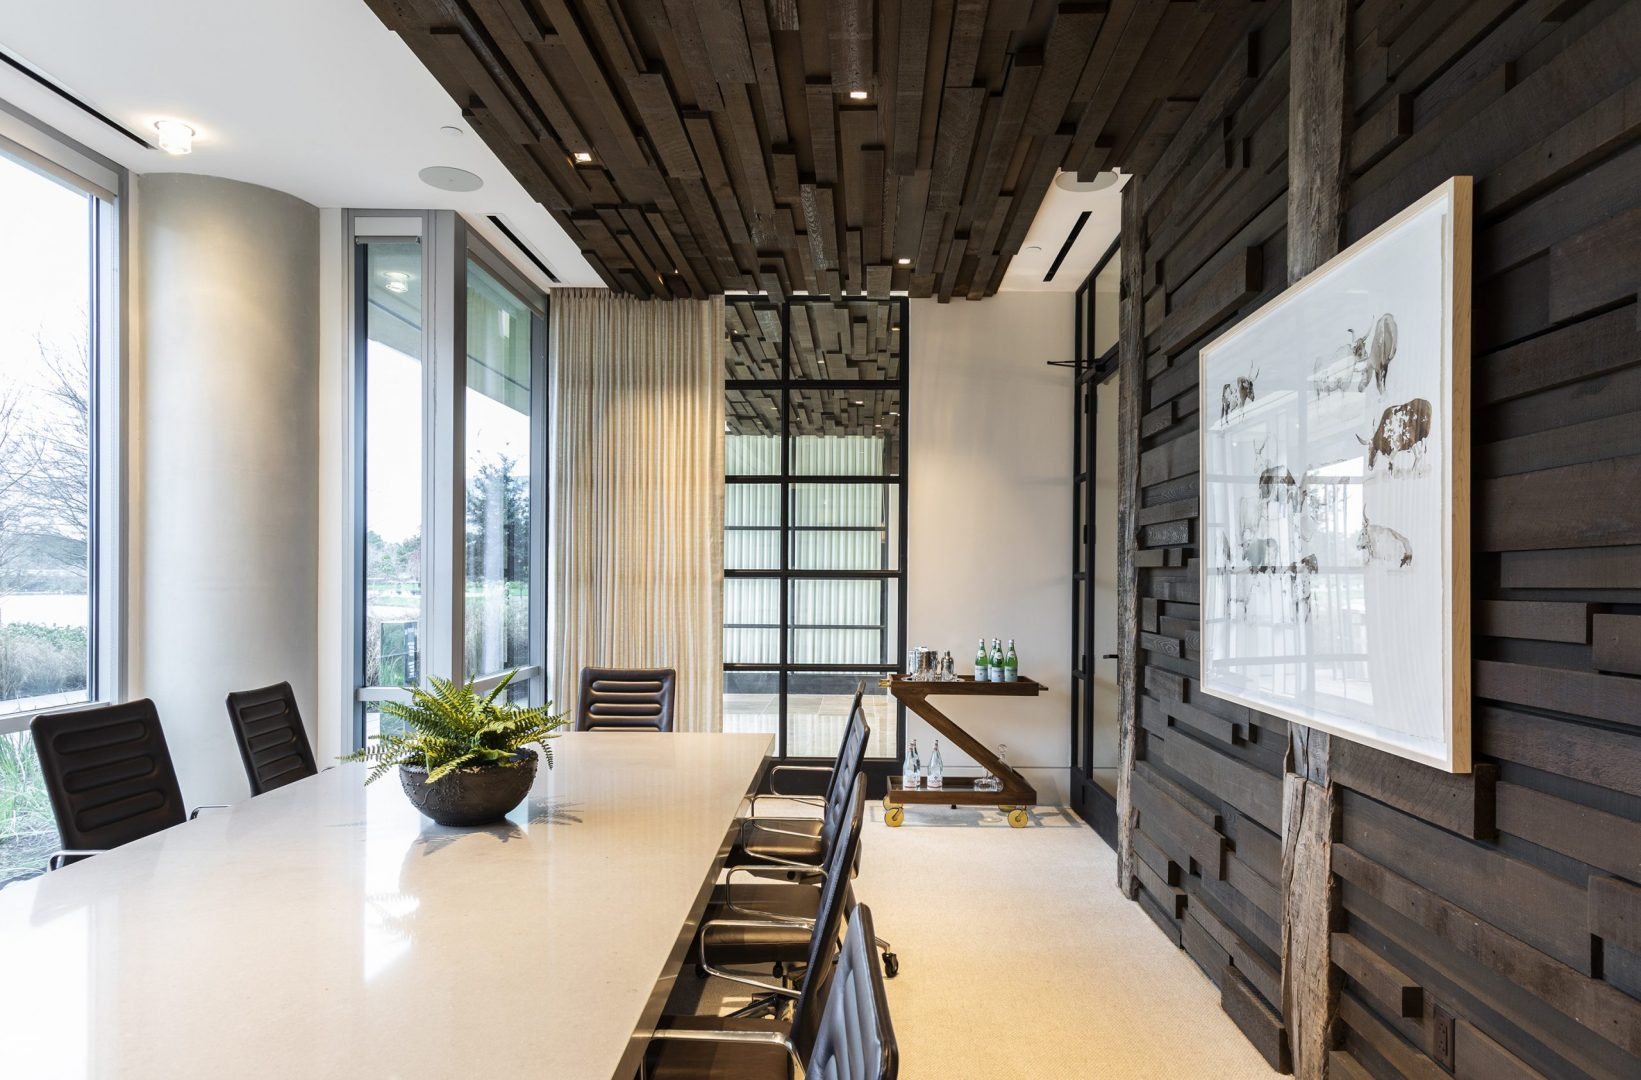 BEUSA Energy Corporate Interior Design Board Room Low Res